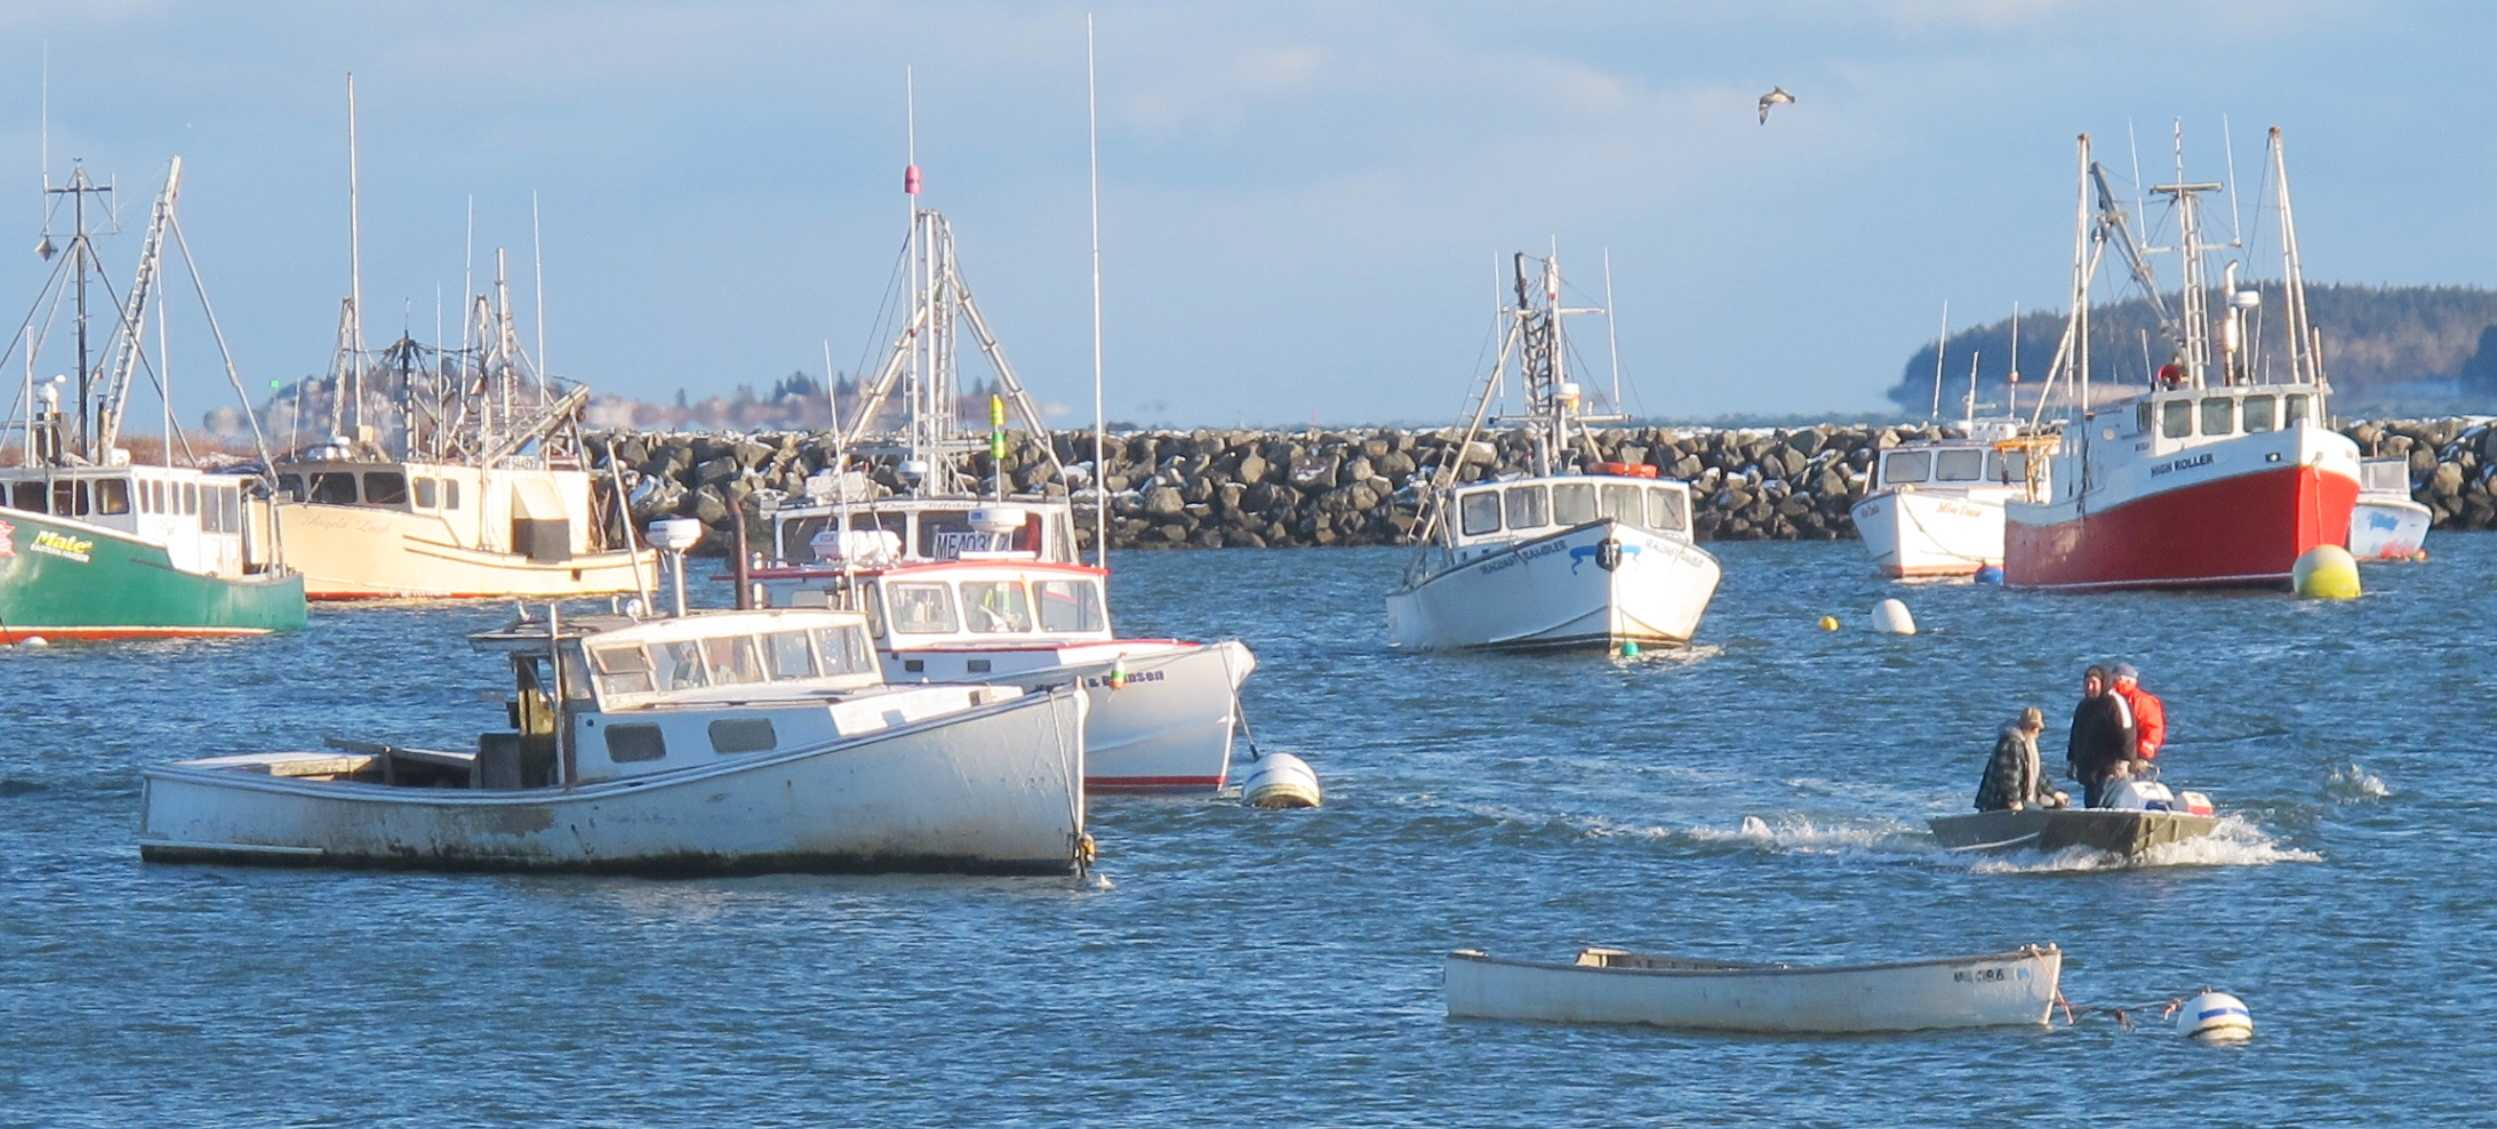 110m Fish Farm Would Mean Changes For Jonesport But Locals Hope Not Too Many